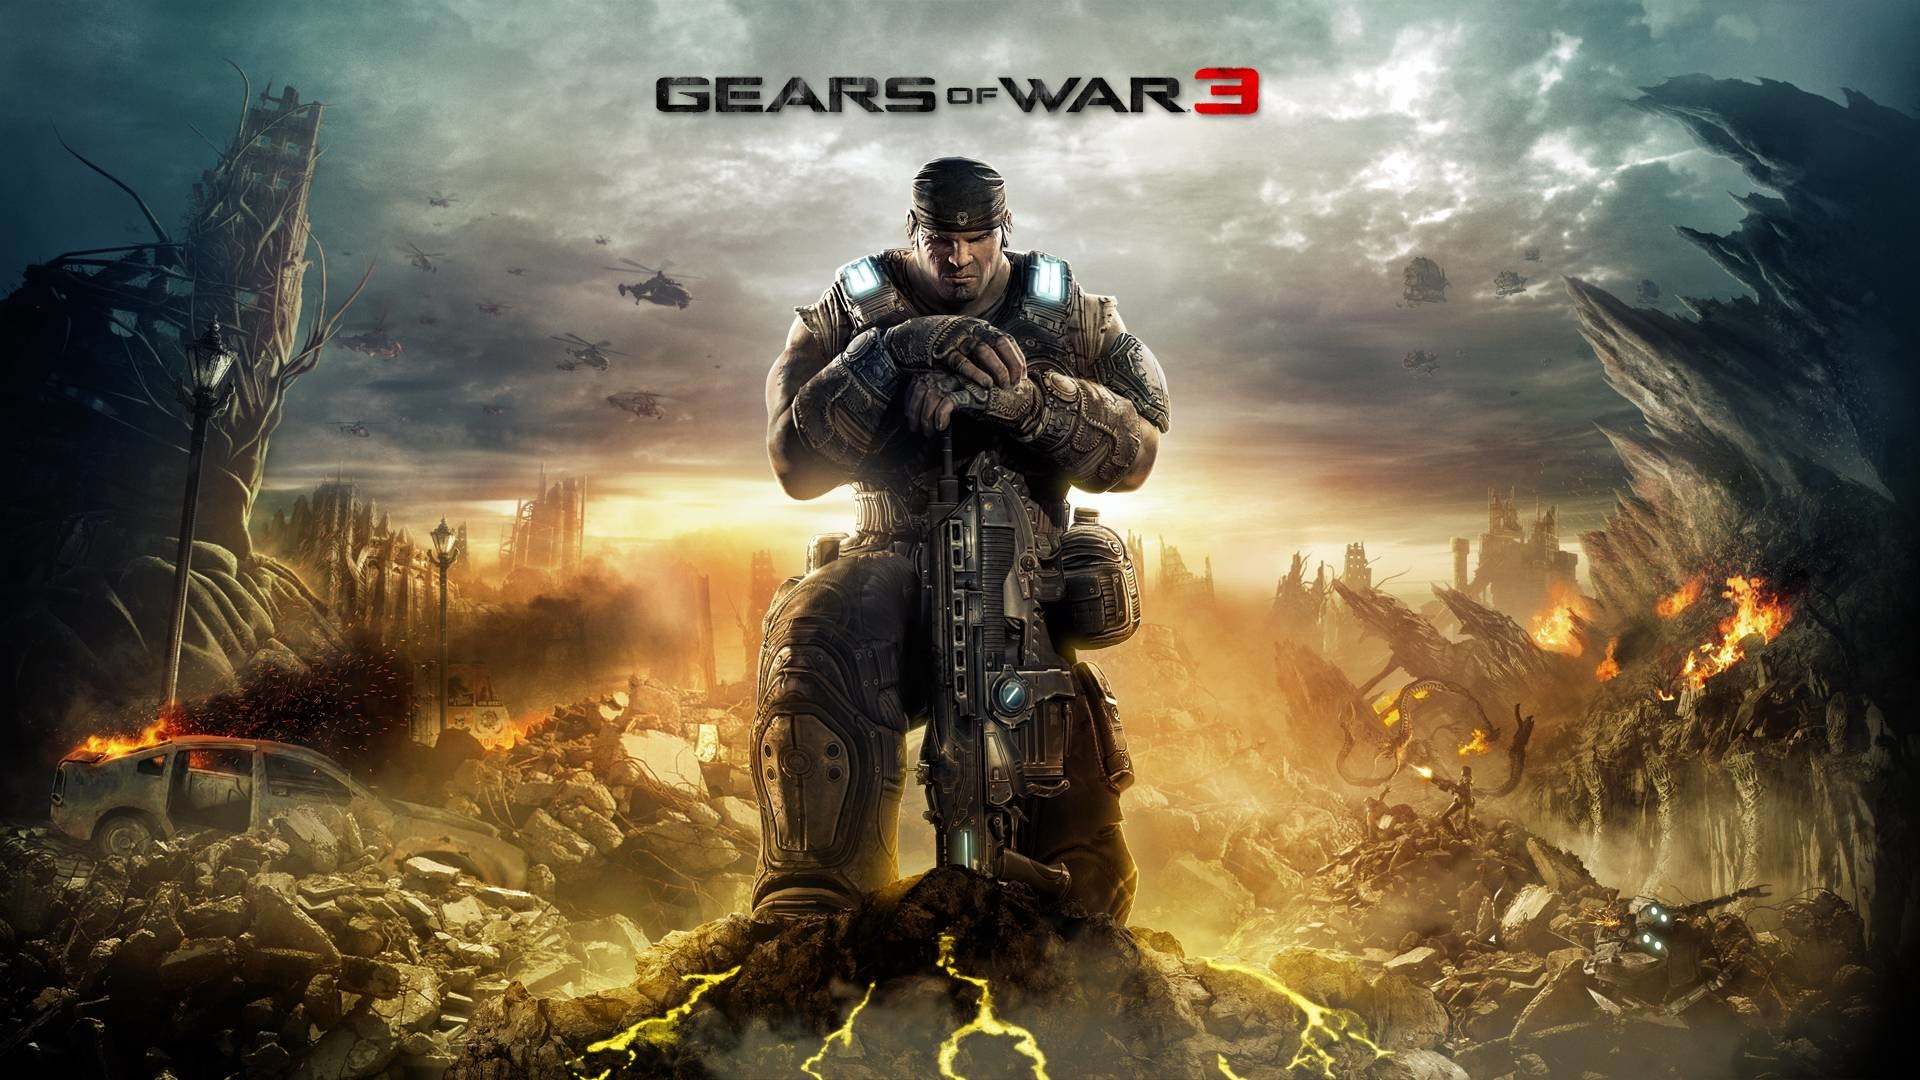 1920x1080 1920 × 1080 Gears Of War 3 Full HD Game Wallp #600 HD Game .